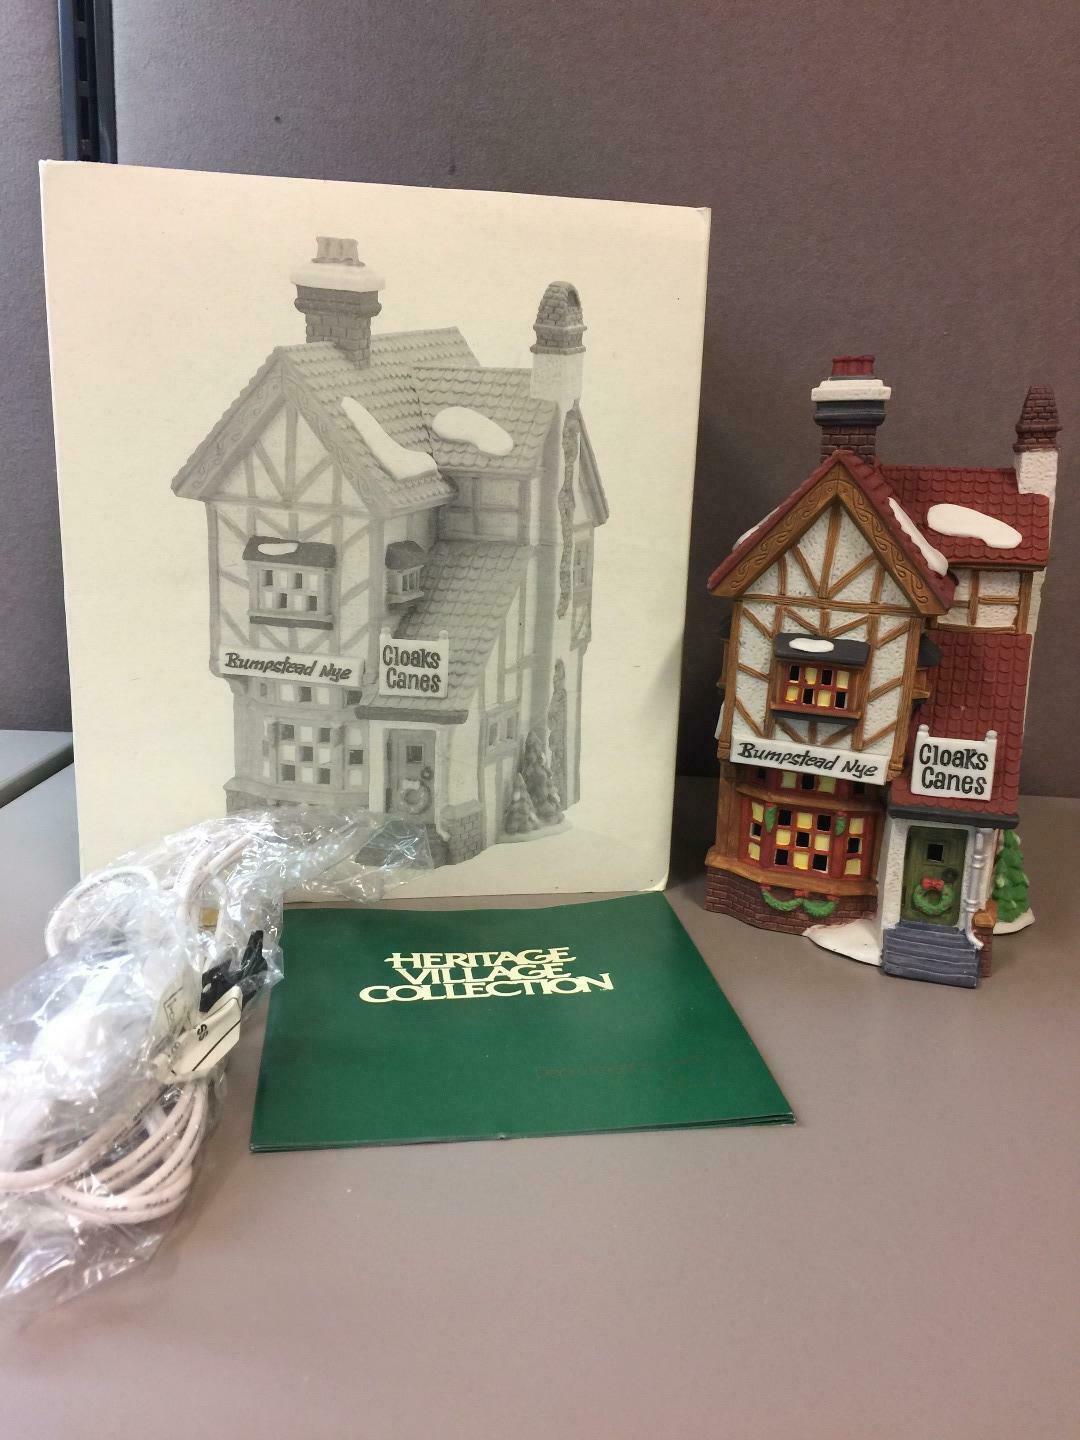 Primary image for BUMPSTEAD NYE CLOAKS & CANES, DICKENS VILLAGE #58085, DEPARTMENT 56 IOB